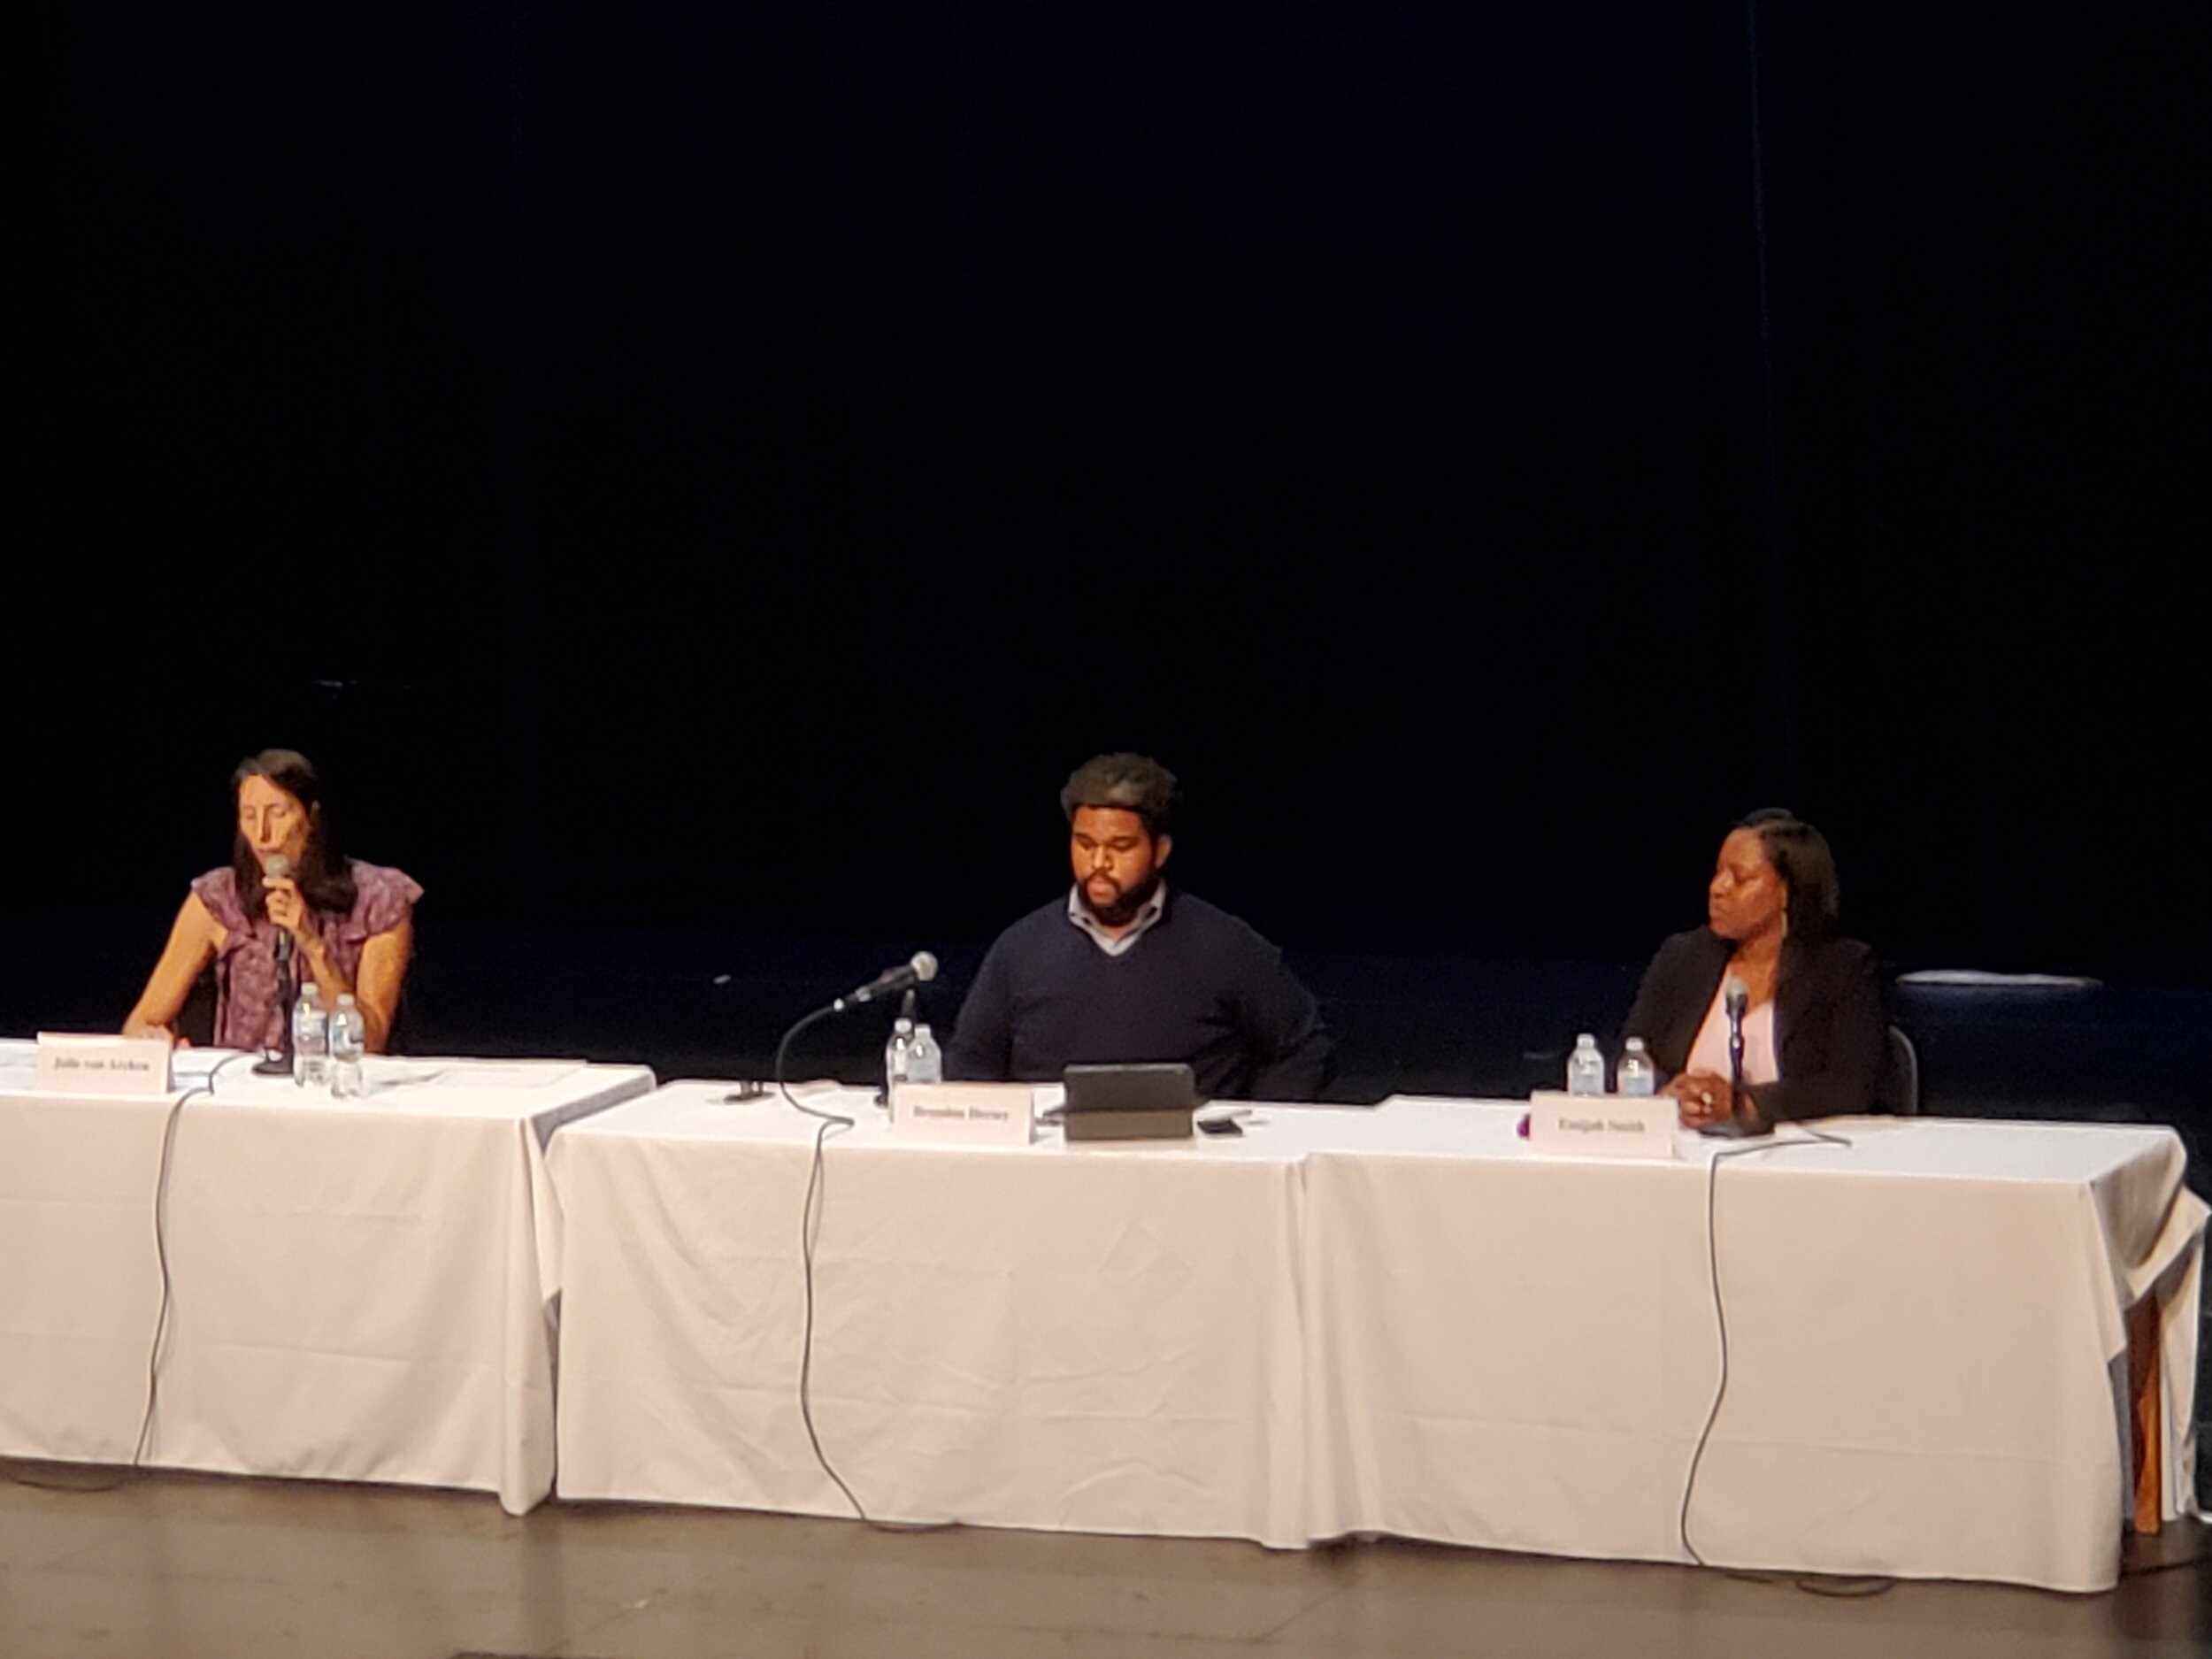 (From left to right: Julie Van Arcken, Brandon Hersey and Emijah Smith ponder questions during the final District VII candidate forum at Rainier Beach High School.)